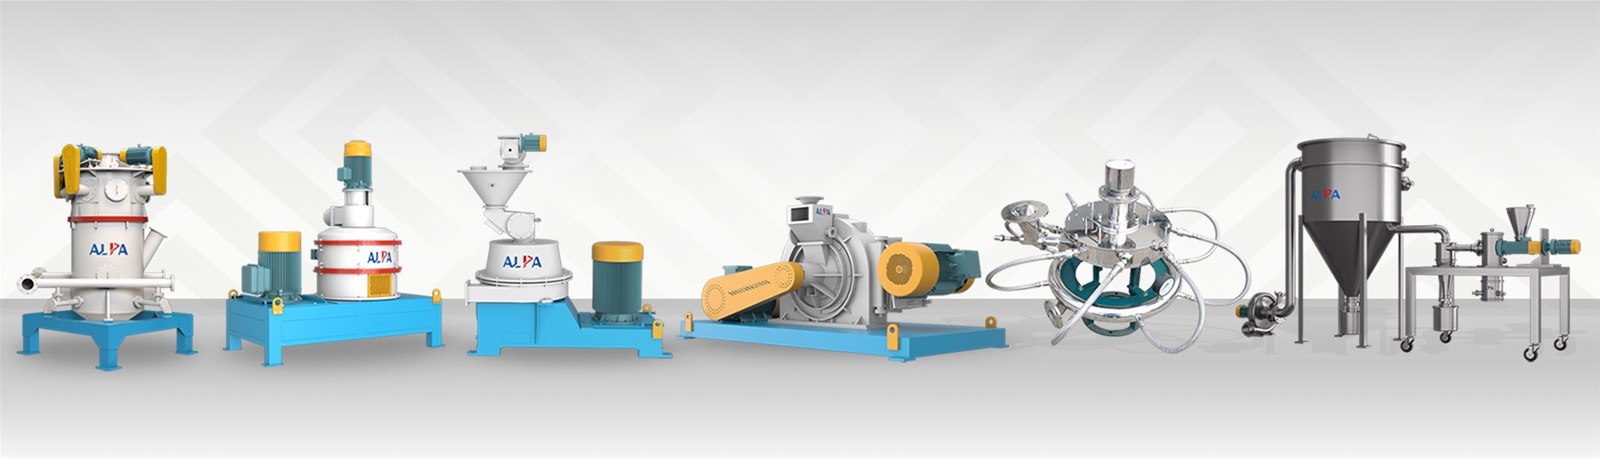 Fine Grinding Imppact Hammer Mill with Cyclone